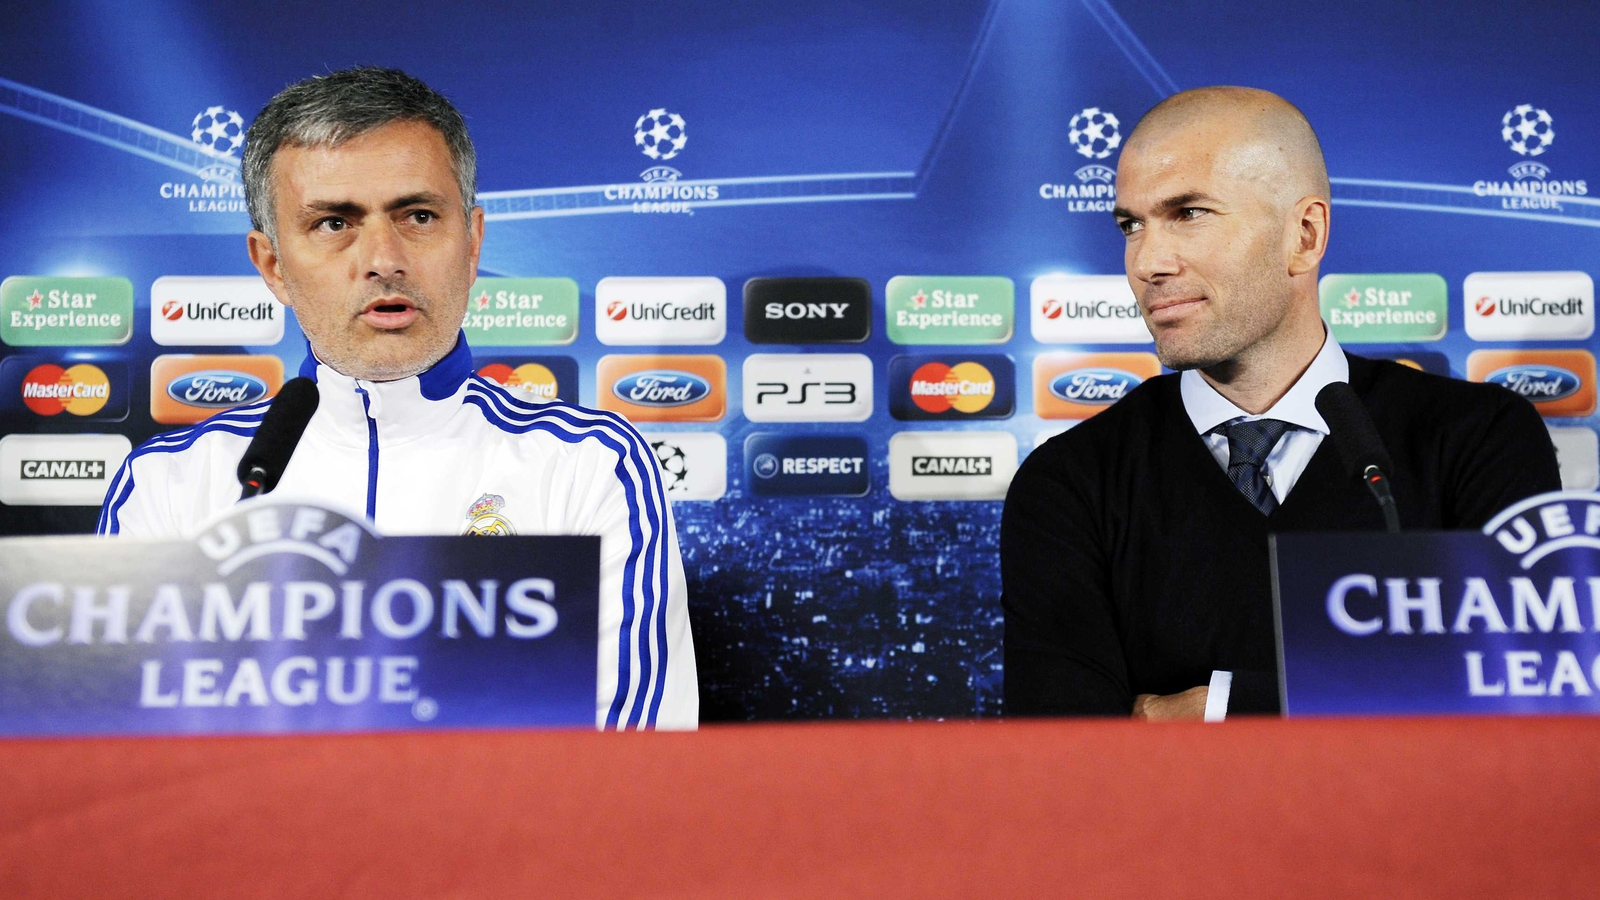 Zidane not fully prepared to take Real position